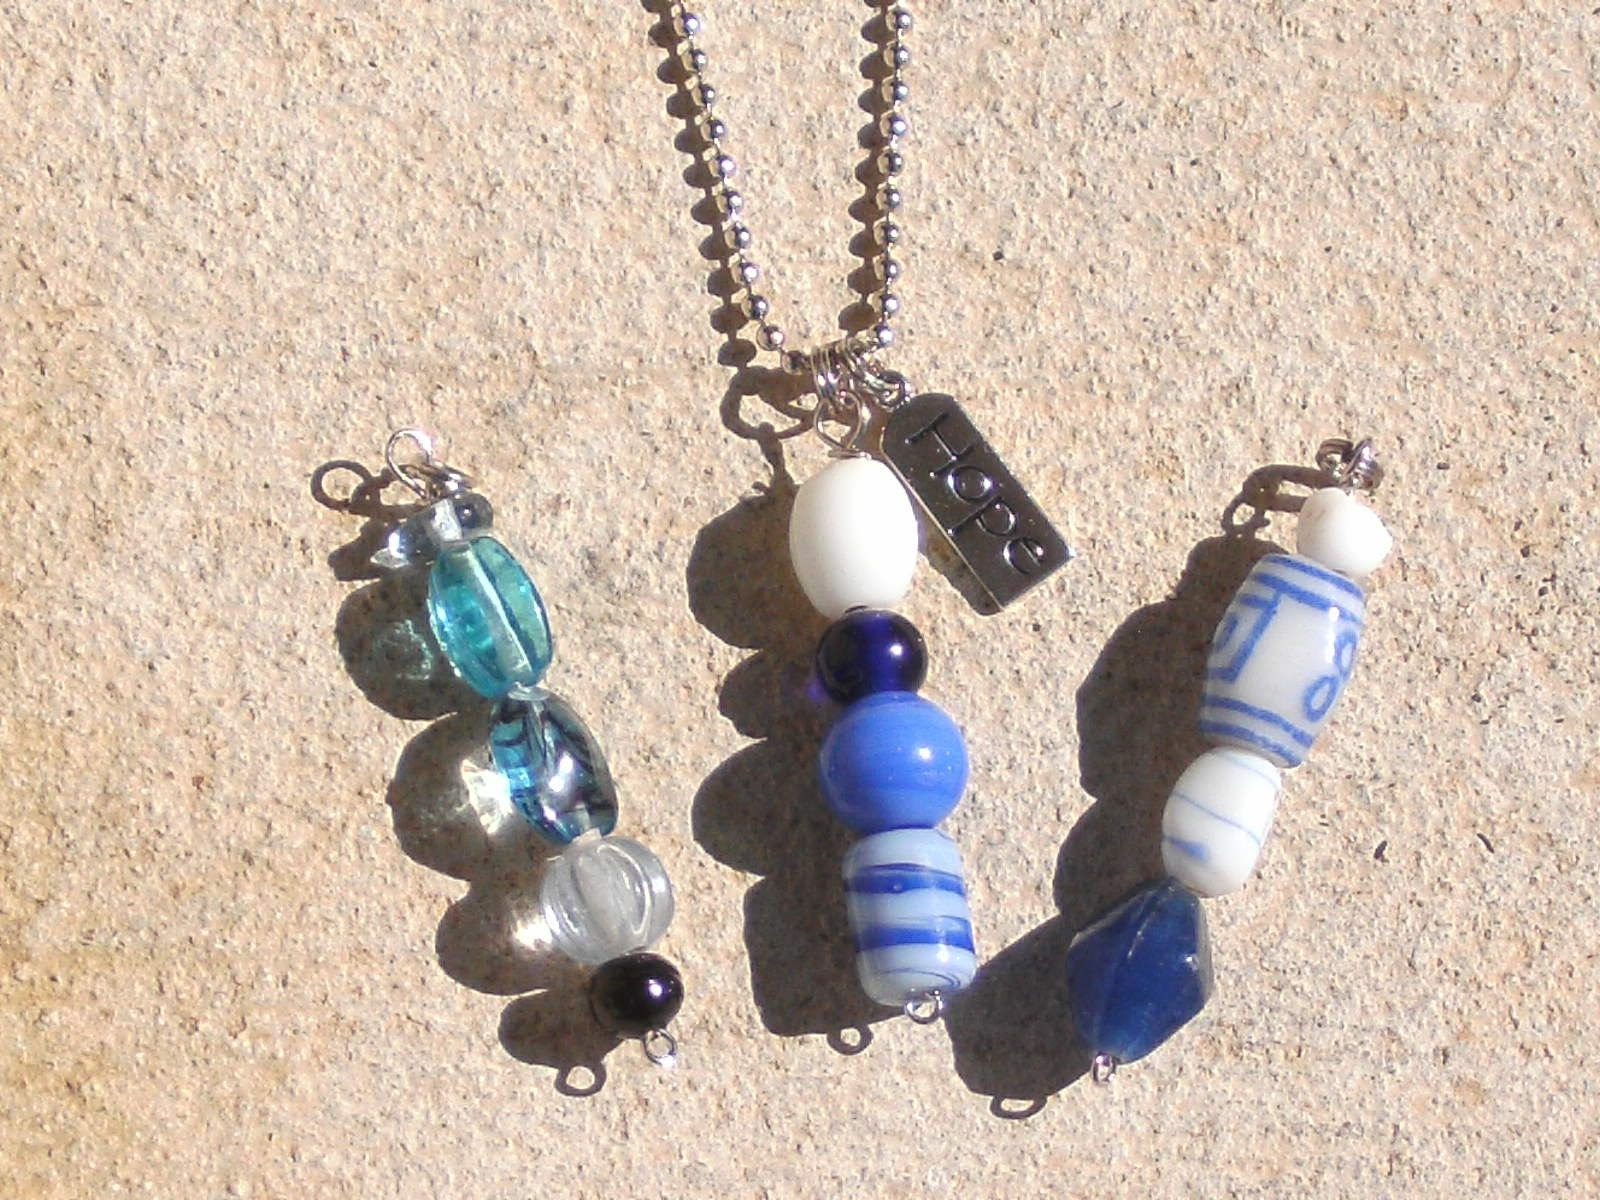 Blue Glass Bead Pendant set w/HOPE silver charm